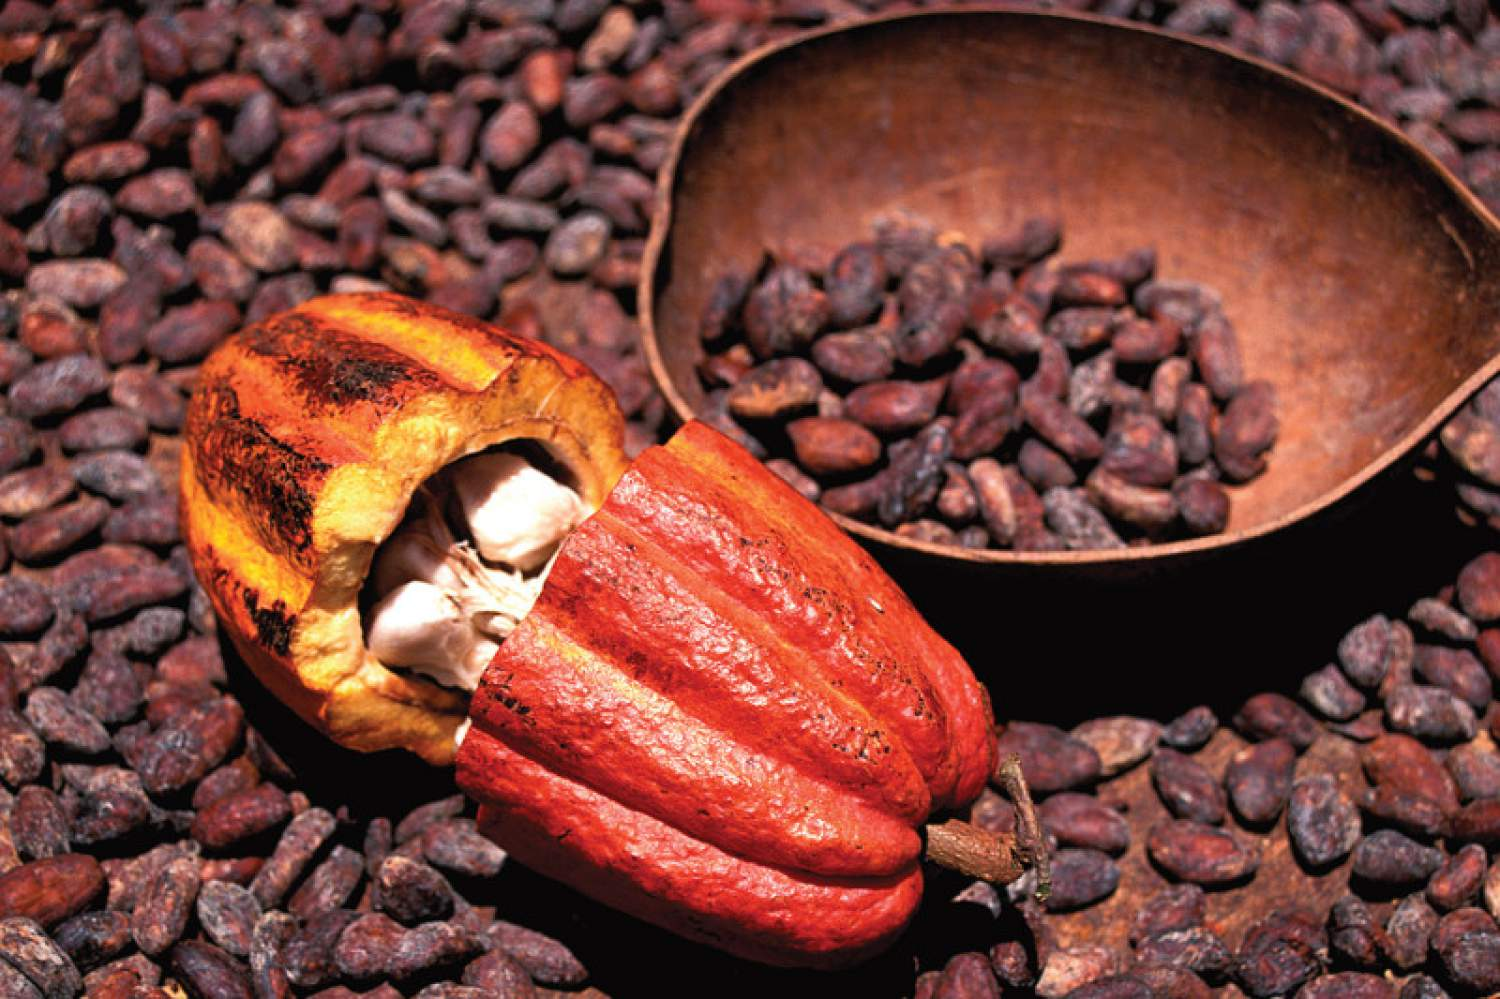 Cacao at the food market, Guadeloupe